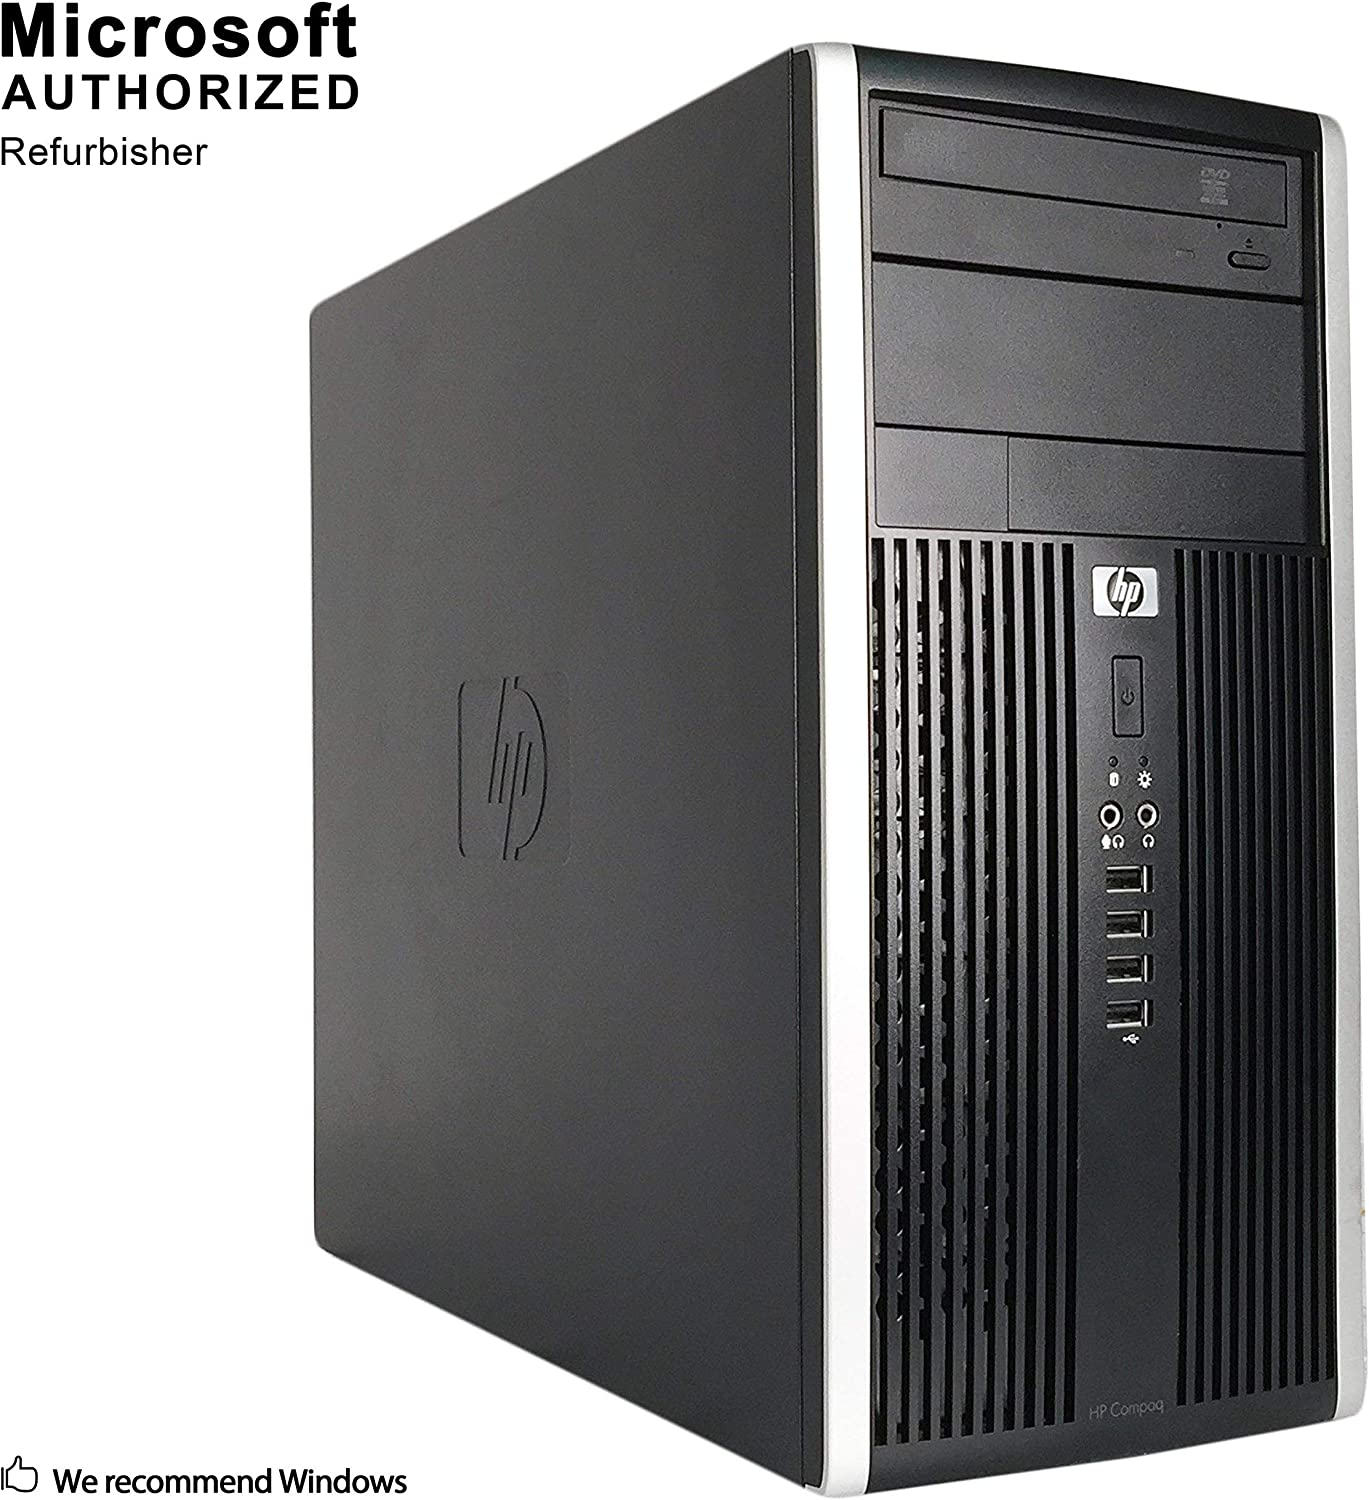 HP Pro 6200 Mini Tower Business High Performance Desktop Computer PC (Intel Core i3-2100 3.1GB Dual Core,6GB RAM DDR3,500GB HDD,DVD-ROM,Wi-Fi,Windows 10 Home 64)(Renewed)